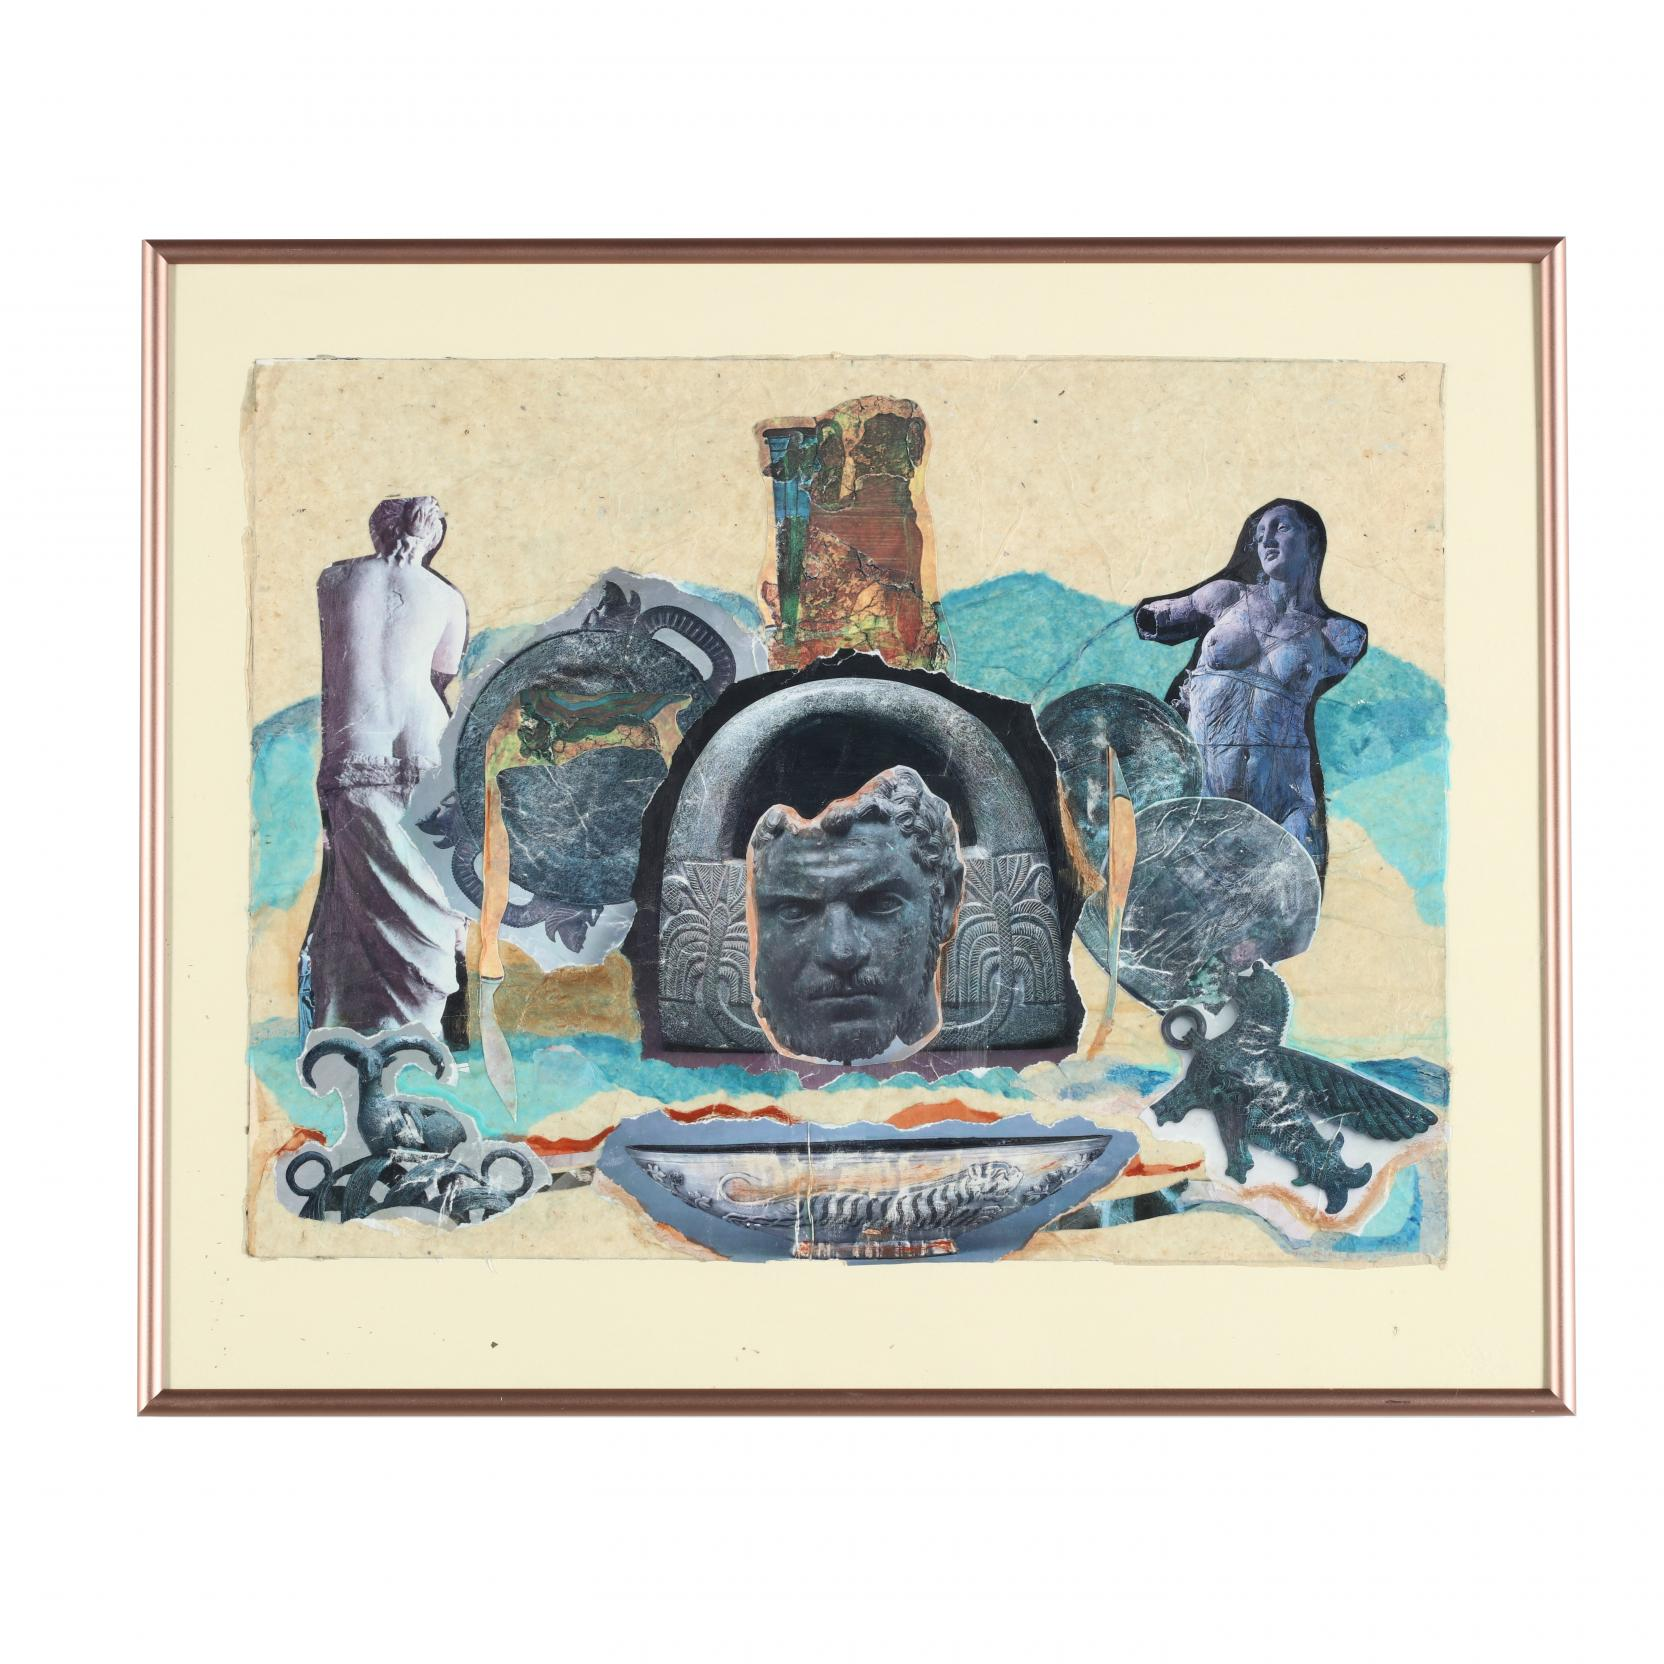 mariana-t-manning-nc-1914-2004-mid-century-framed-collage